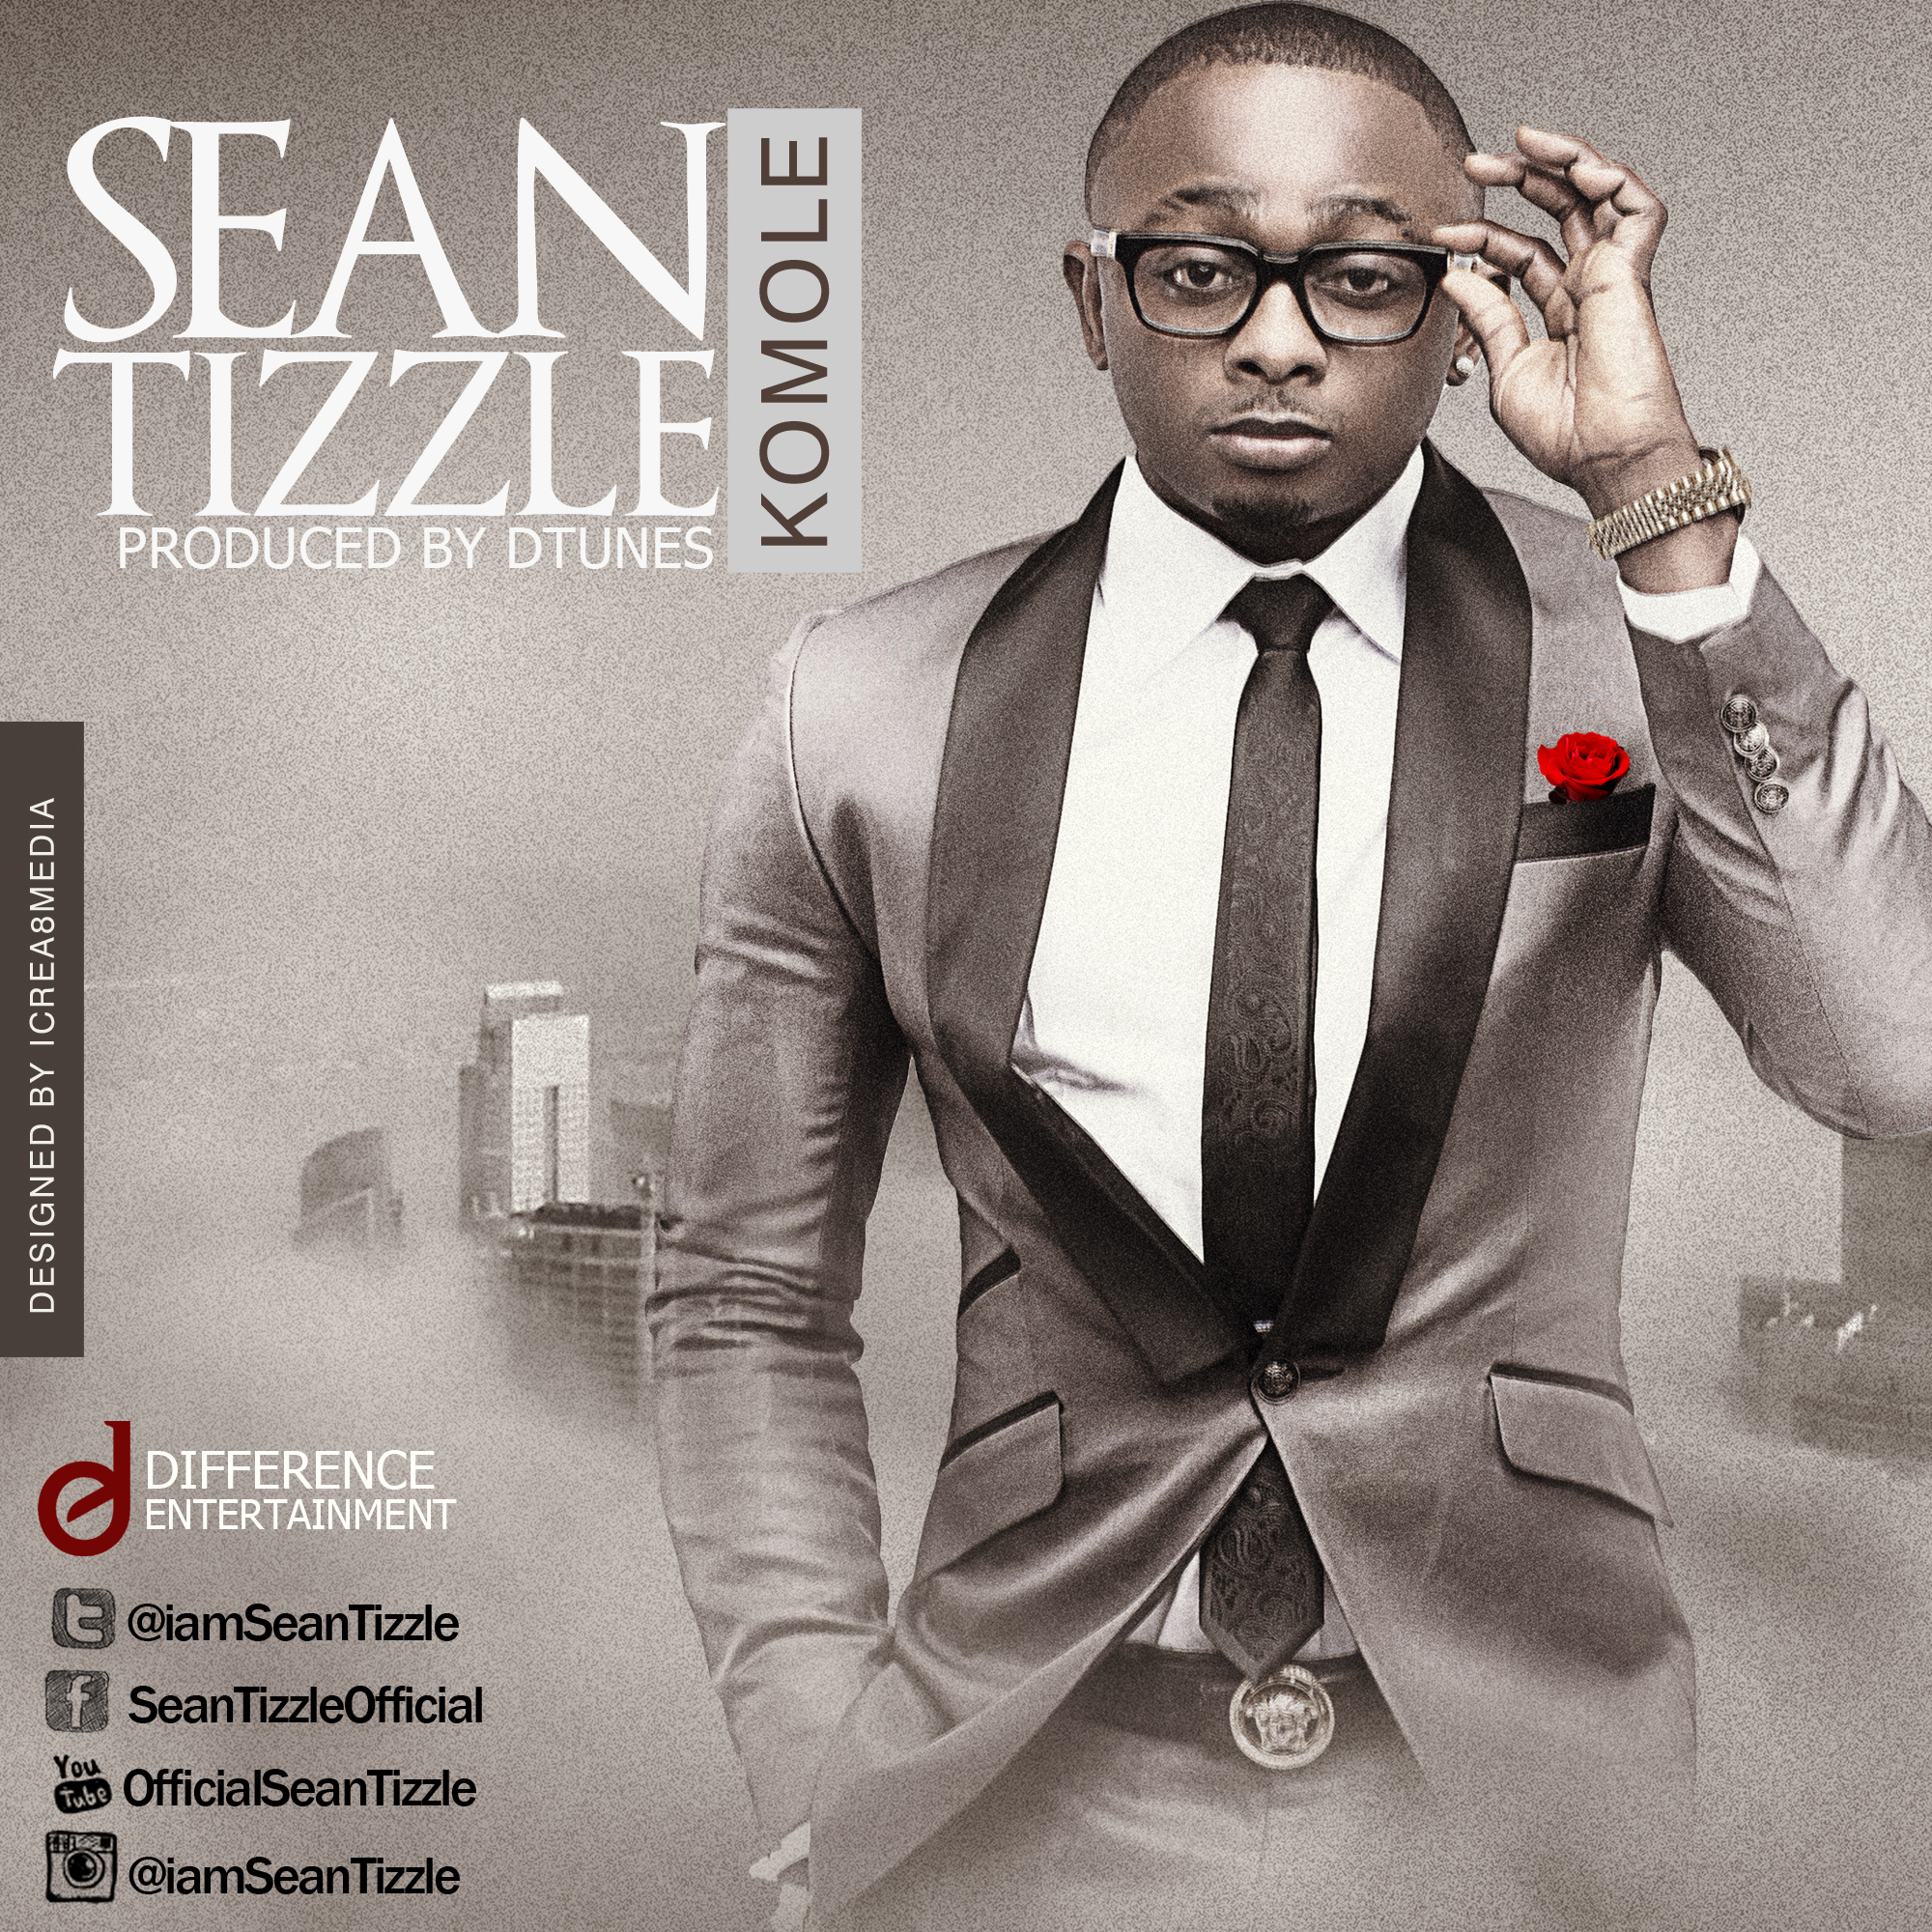 SEAN TIZZLE KOMOLE INTERNET RELEASE ARTWORK MAIN